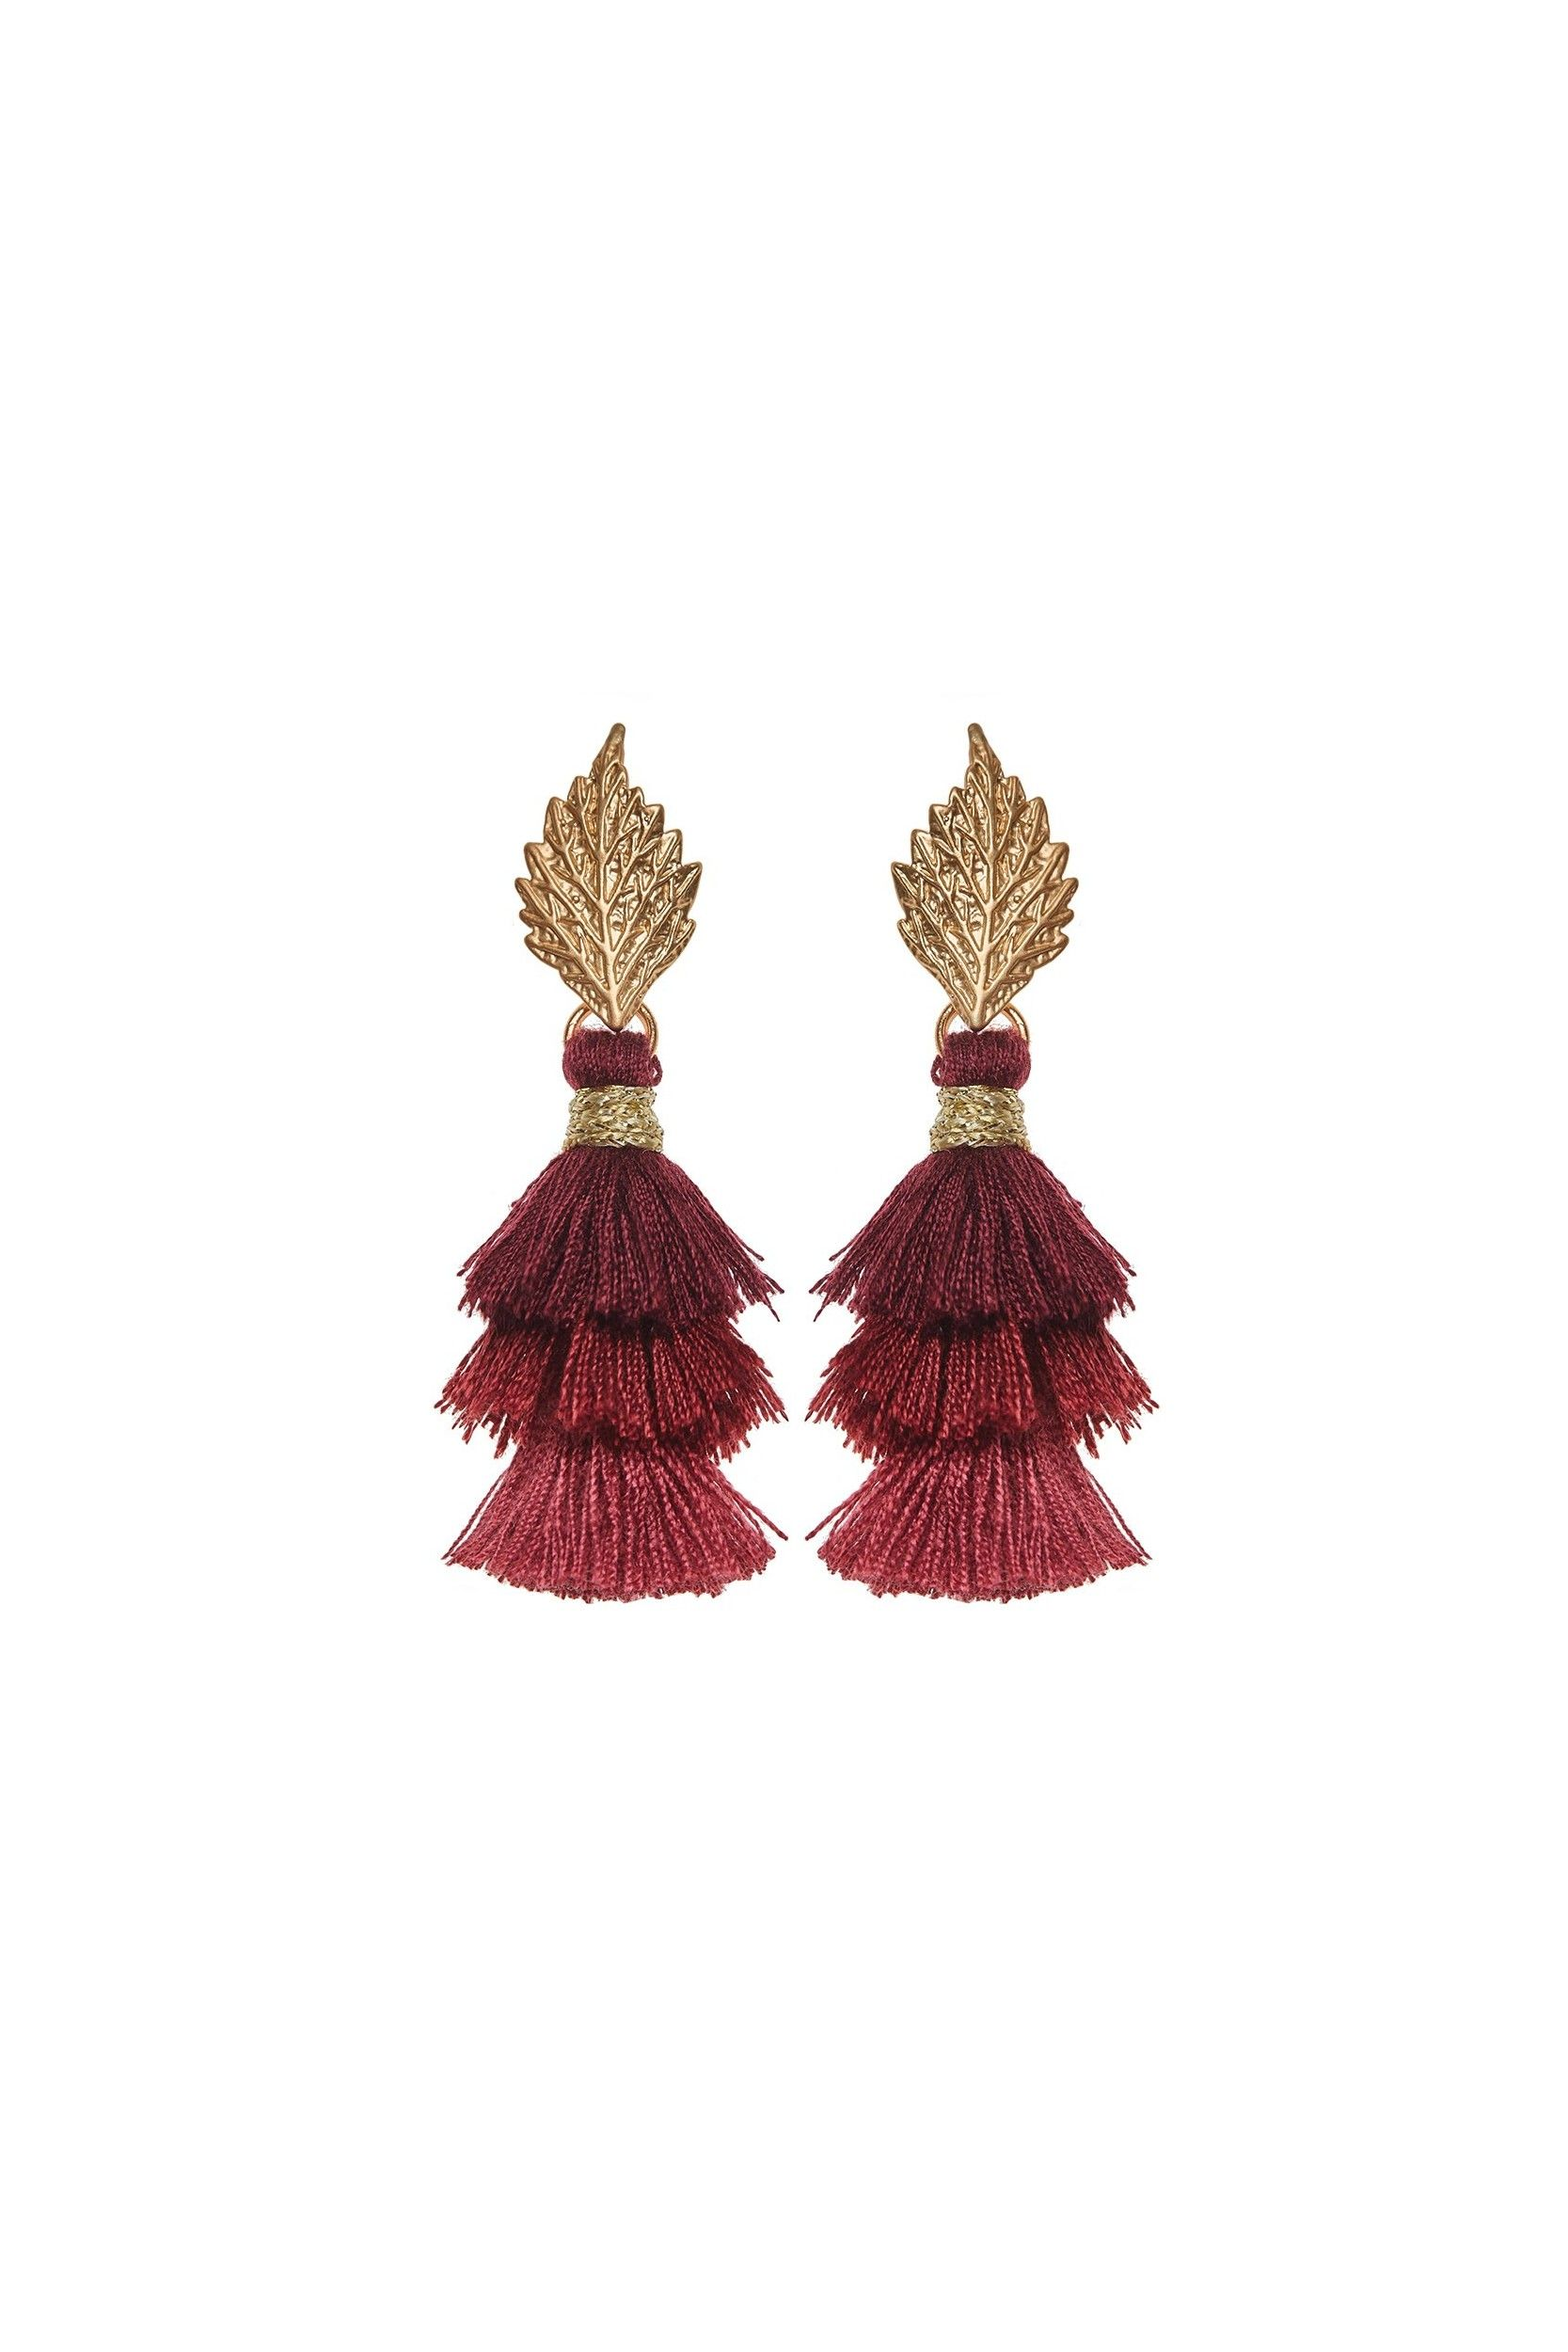 0cd31543876ee Pom Pom Leaf Earrings